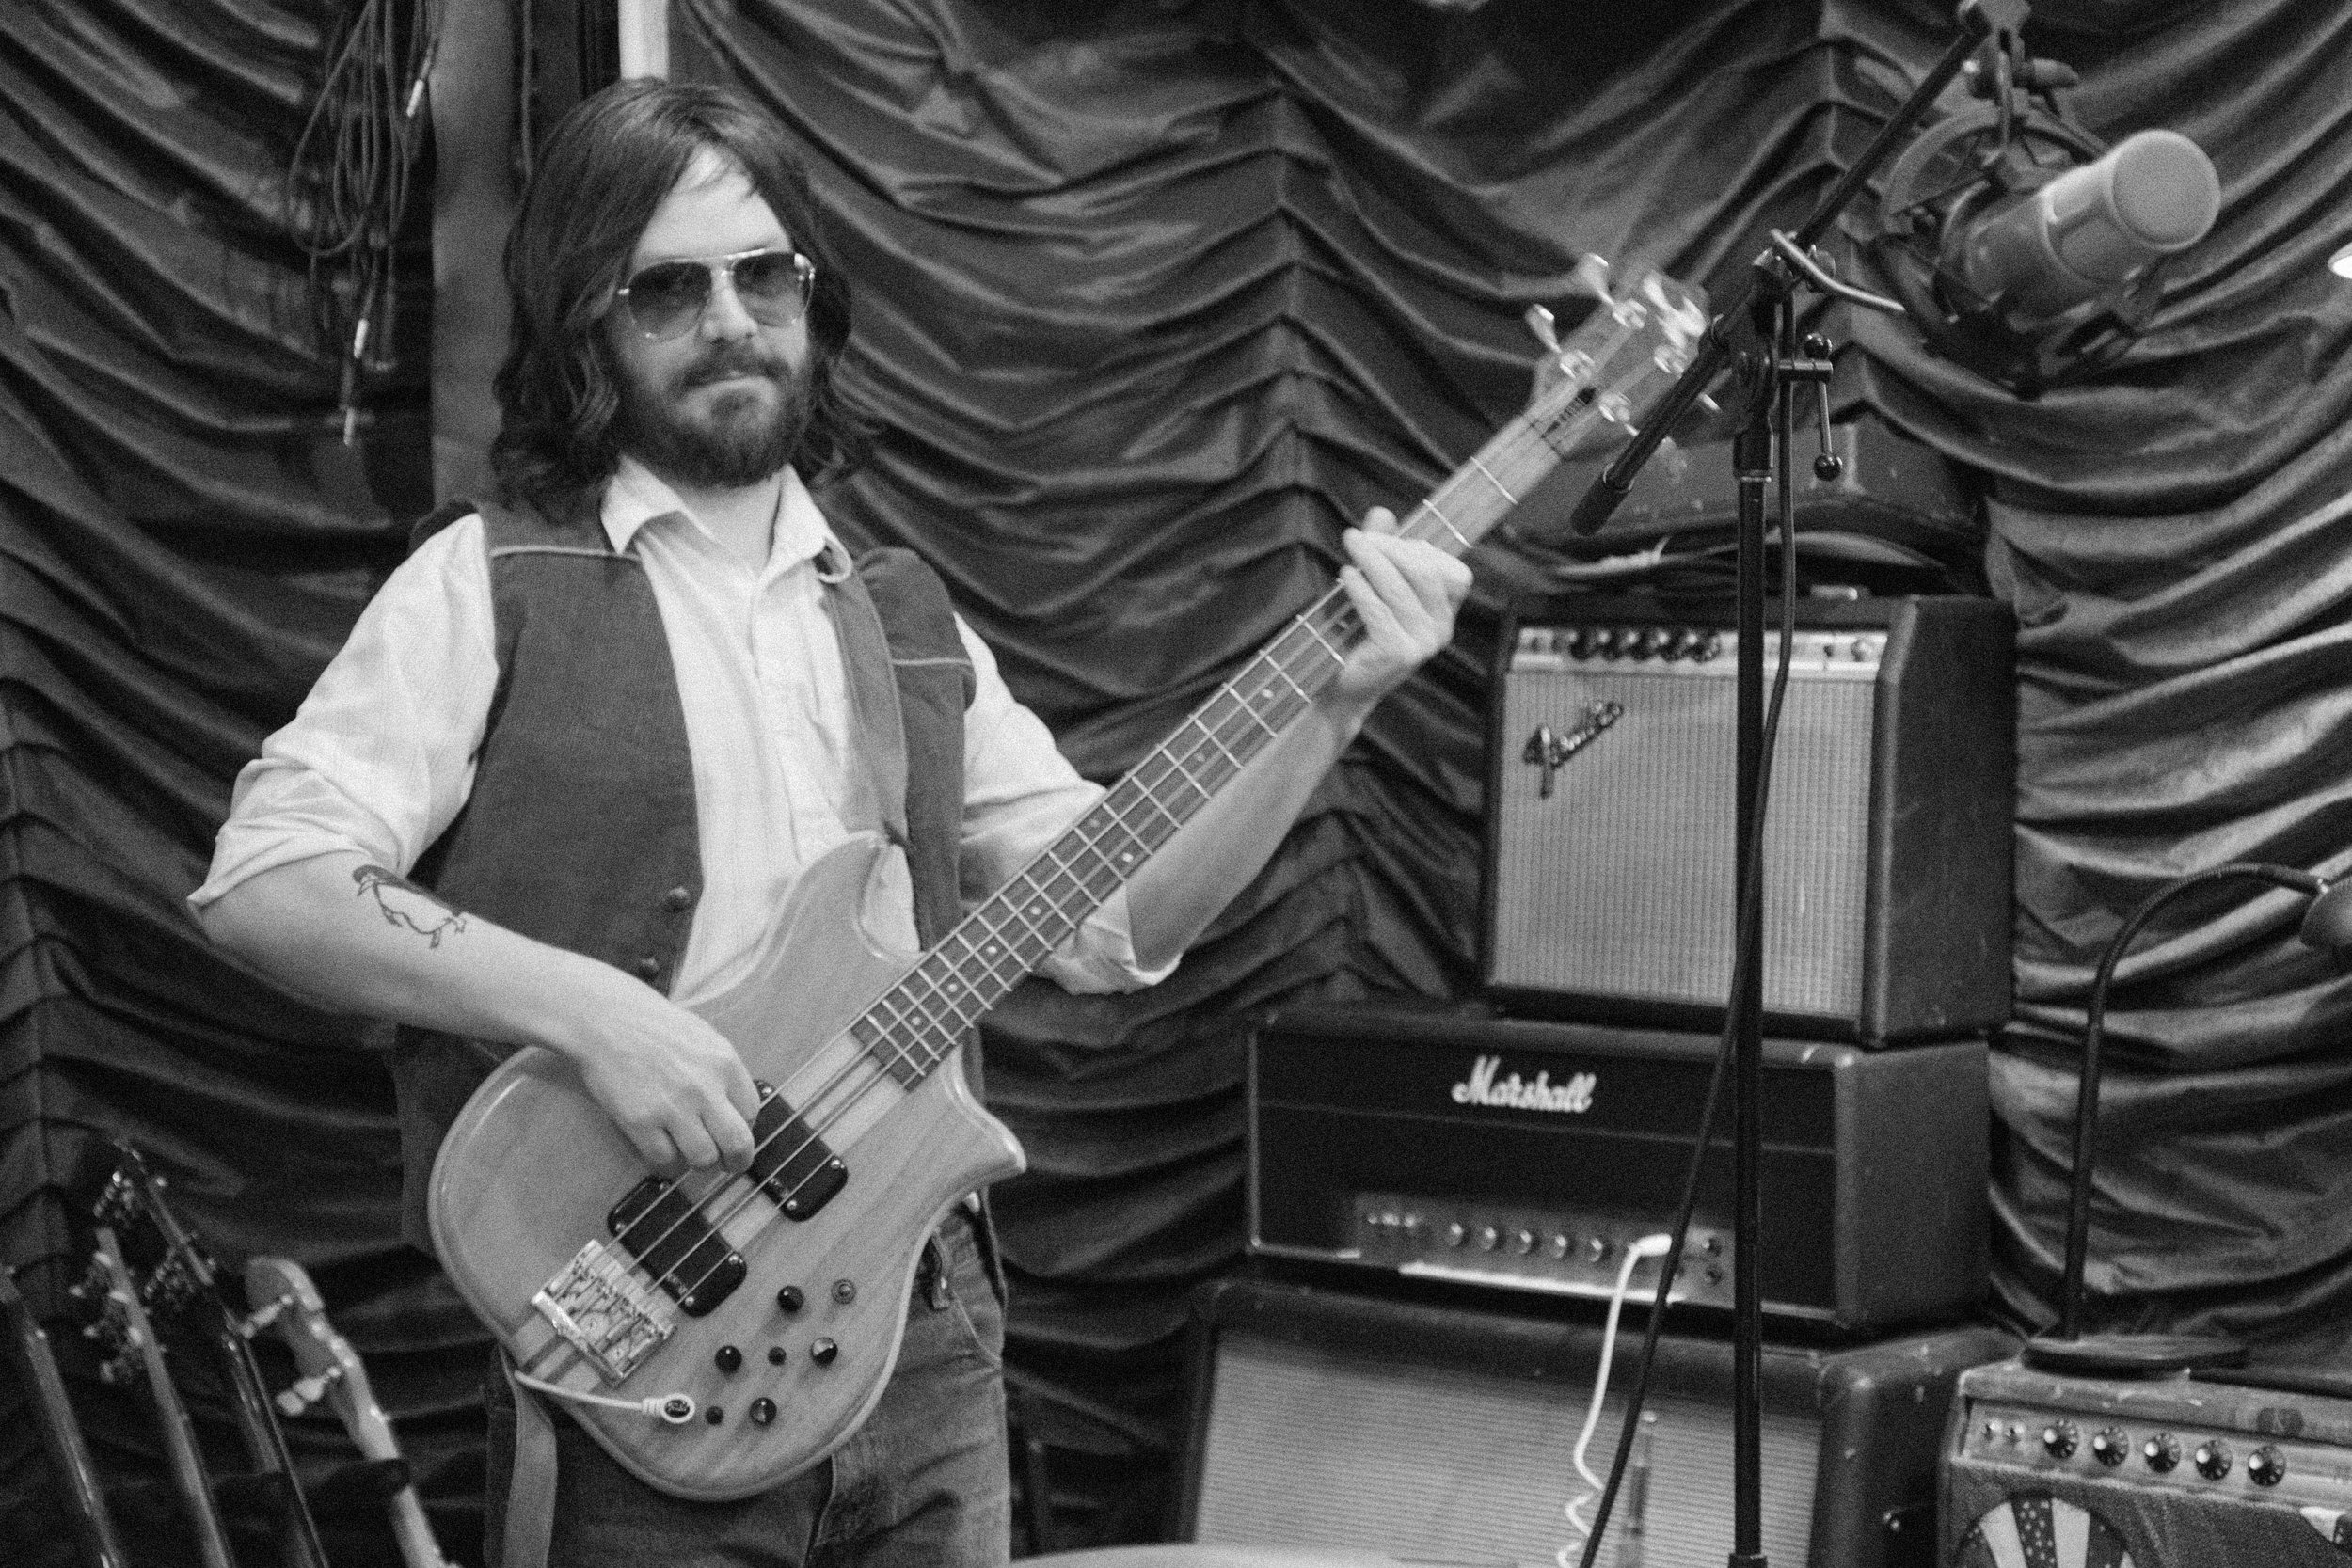 John playing bass_1.jpg